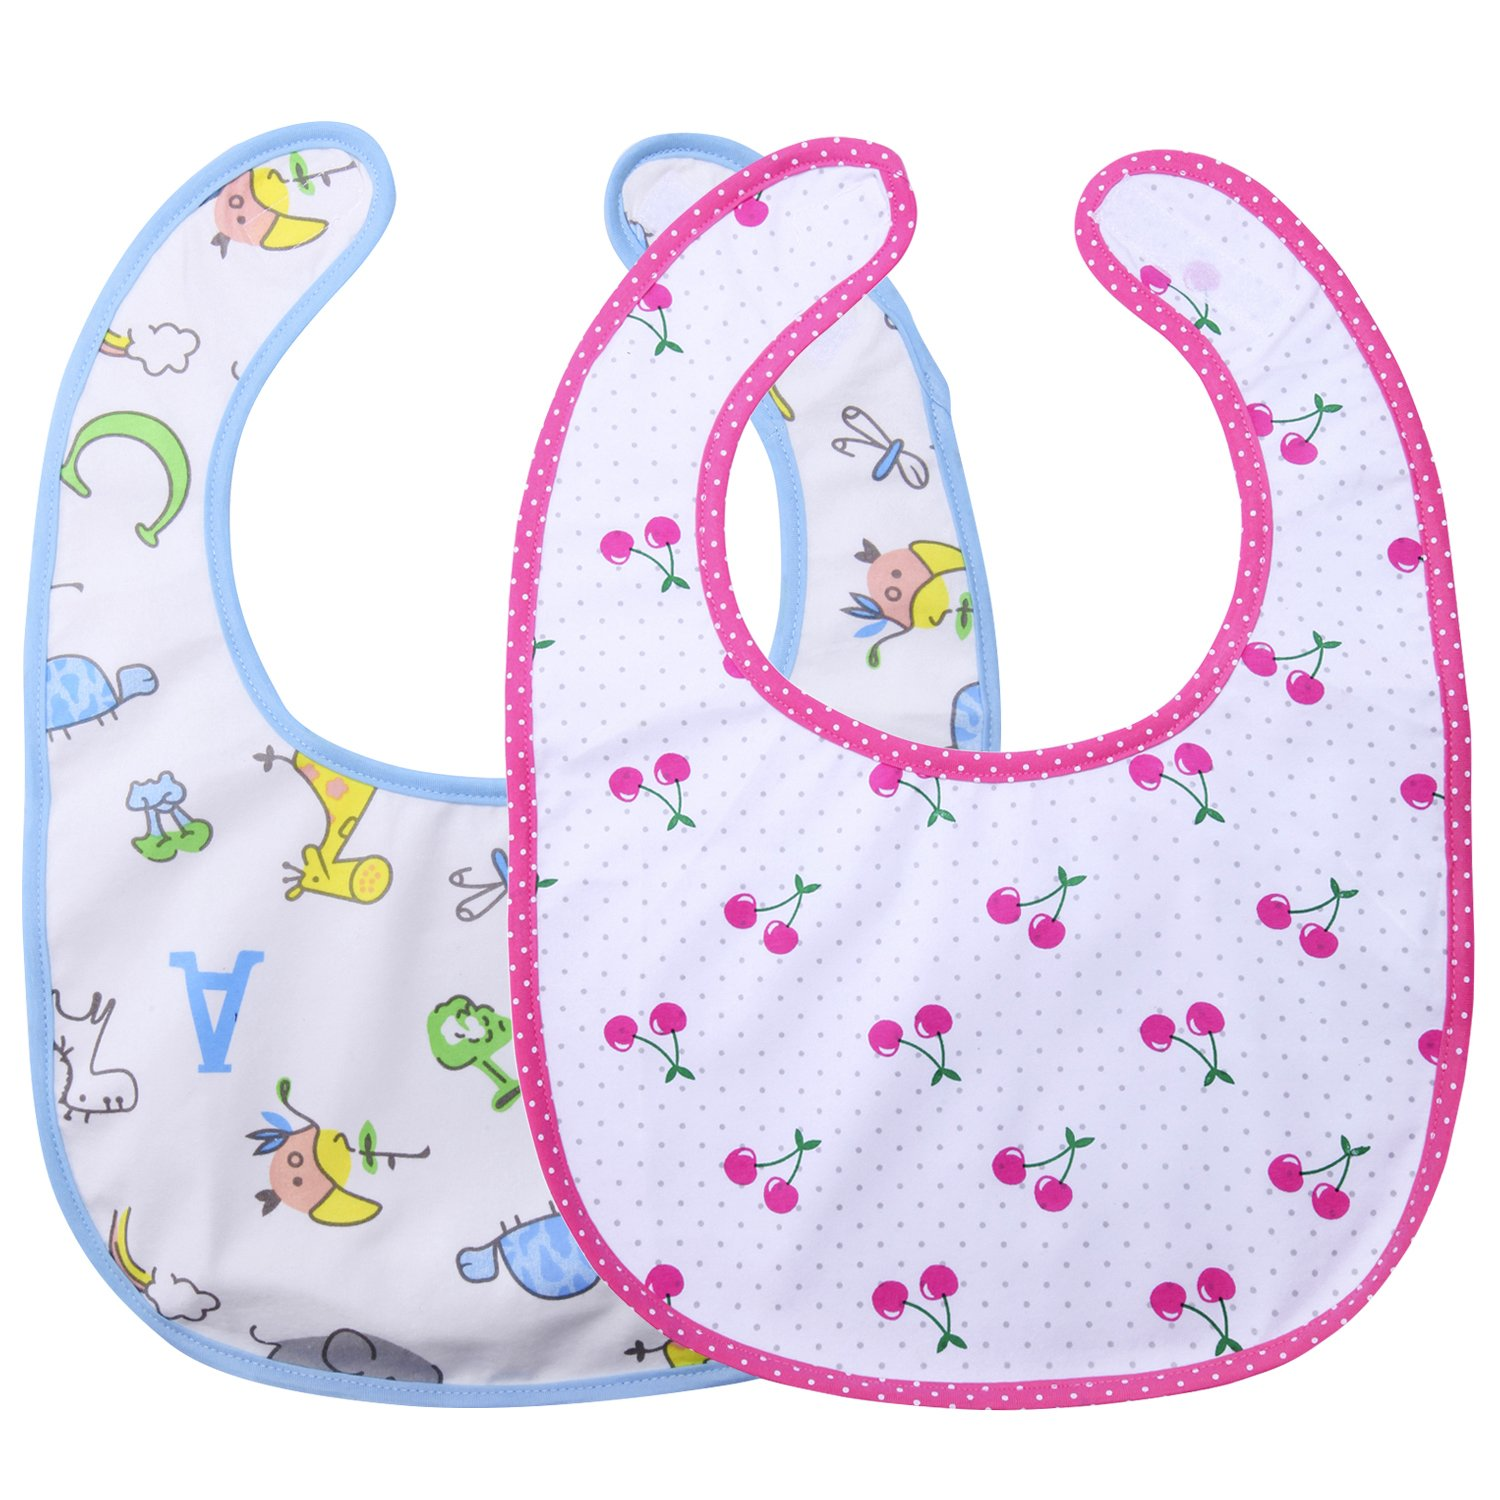 Littleforbig ABDL Adult Sized Bib 2 Packs